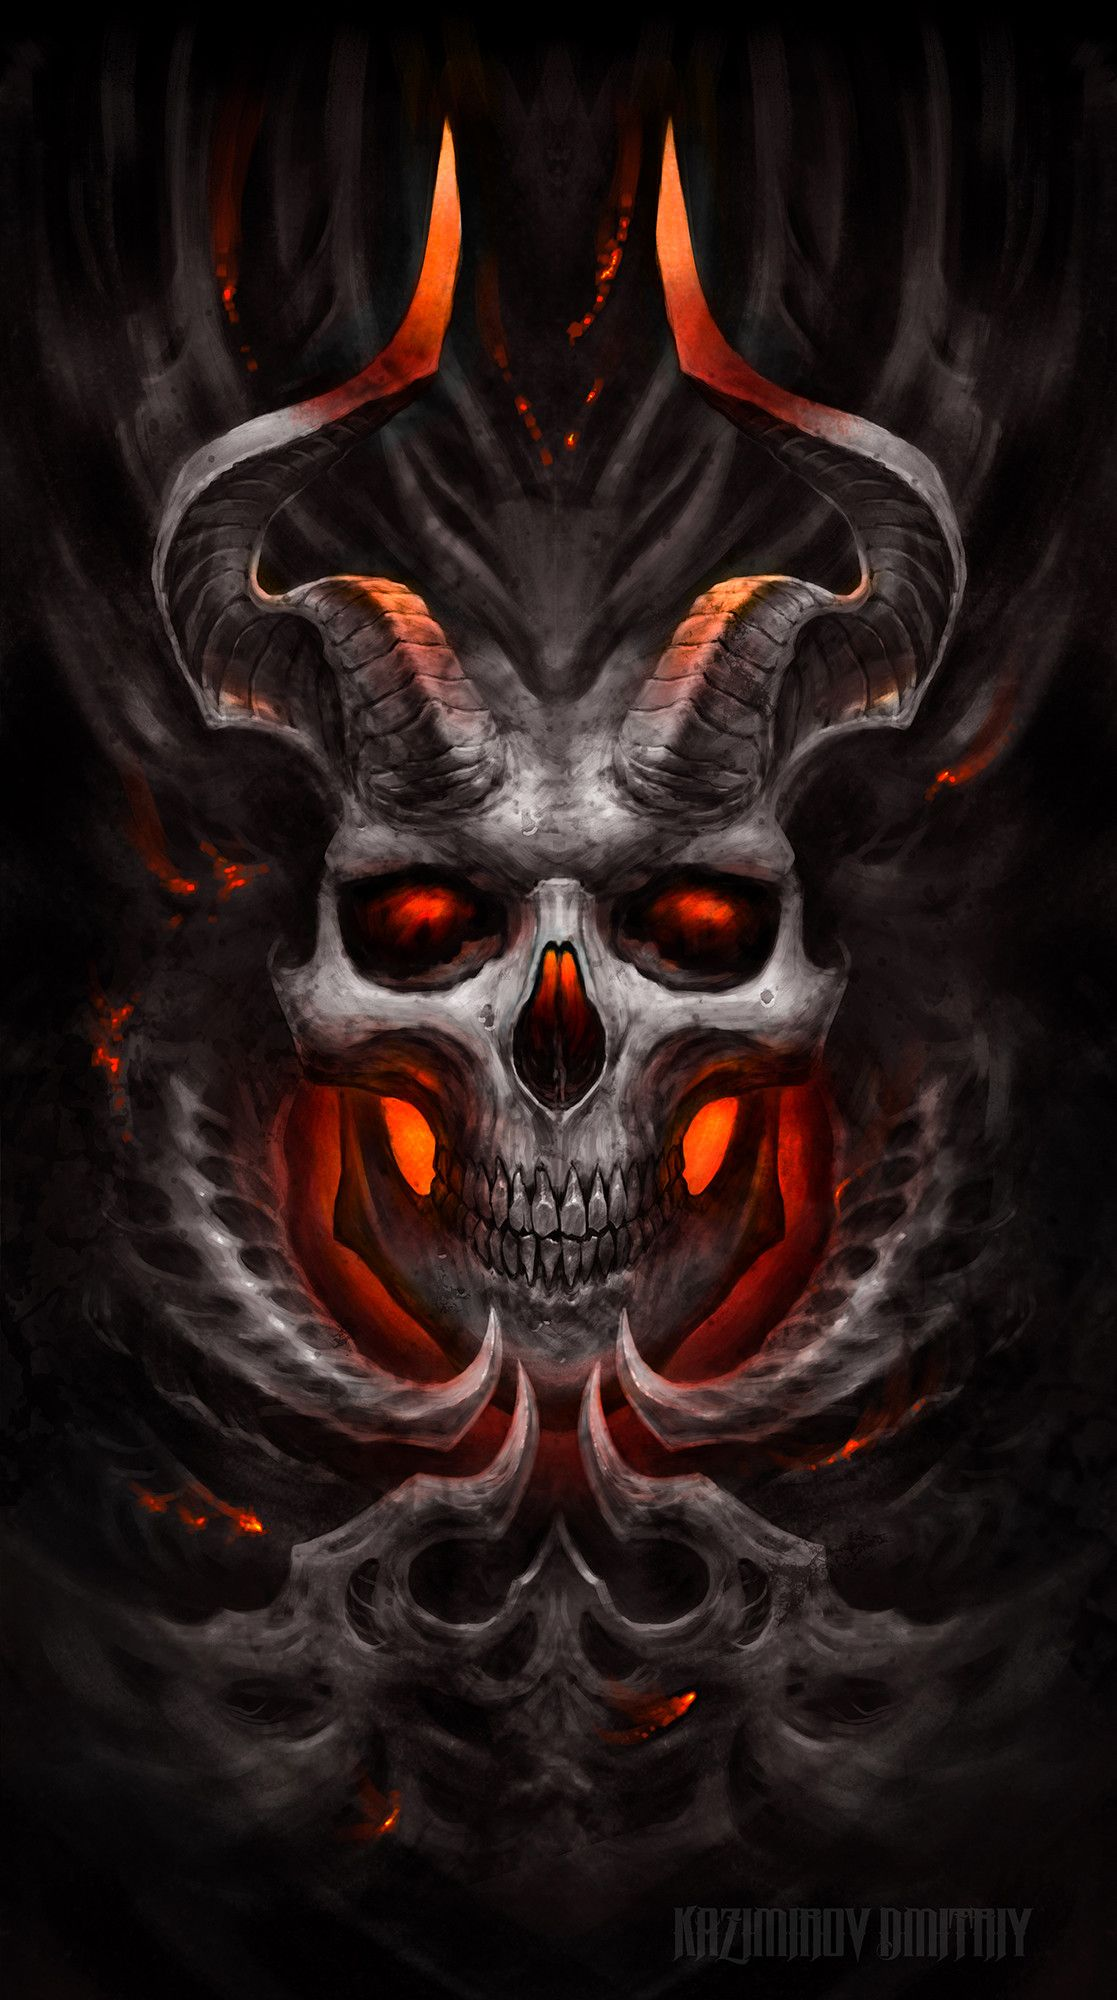 Demon by kazimirov dmitriy on artstation satanic - Devil skull wallpaper ...